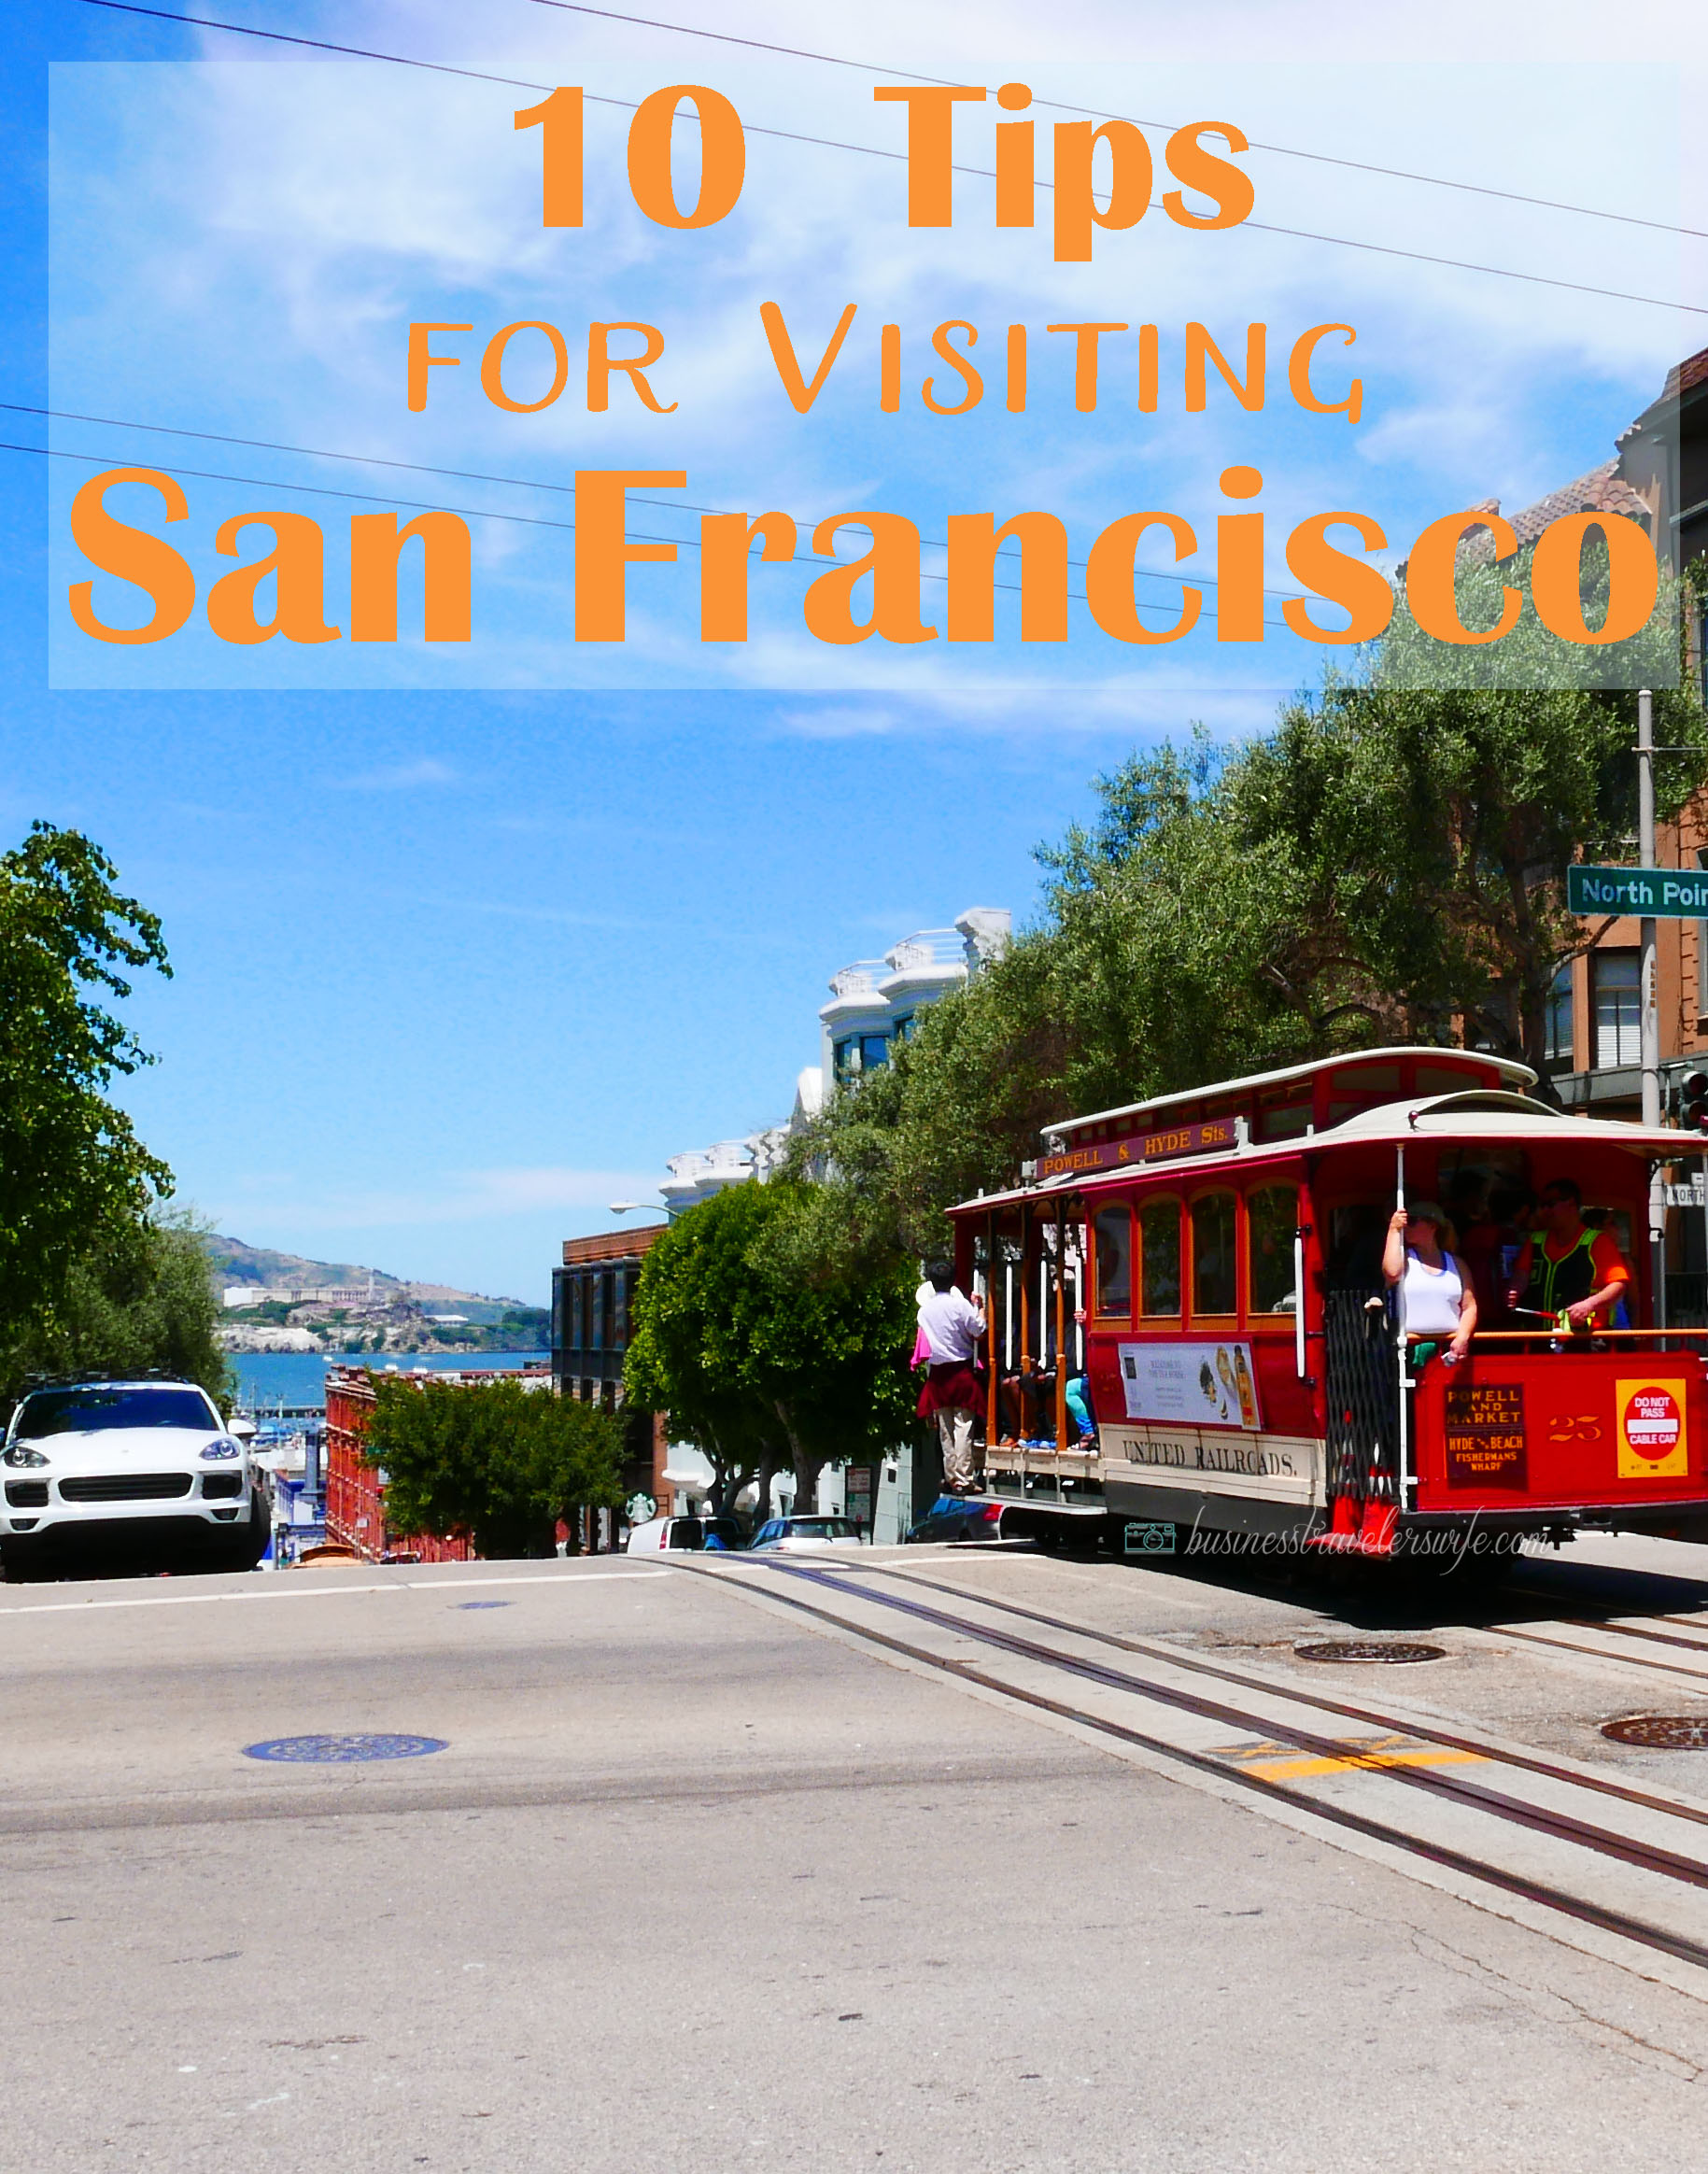 10 tips for visiting san francisco plus 3 day itinerary - San francisco tourist information office ...